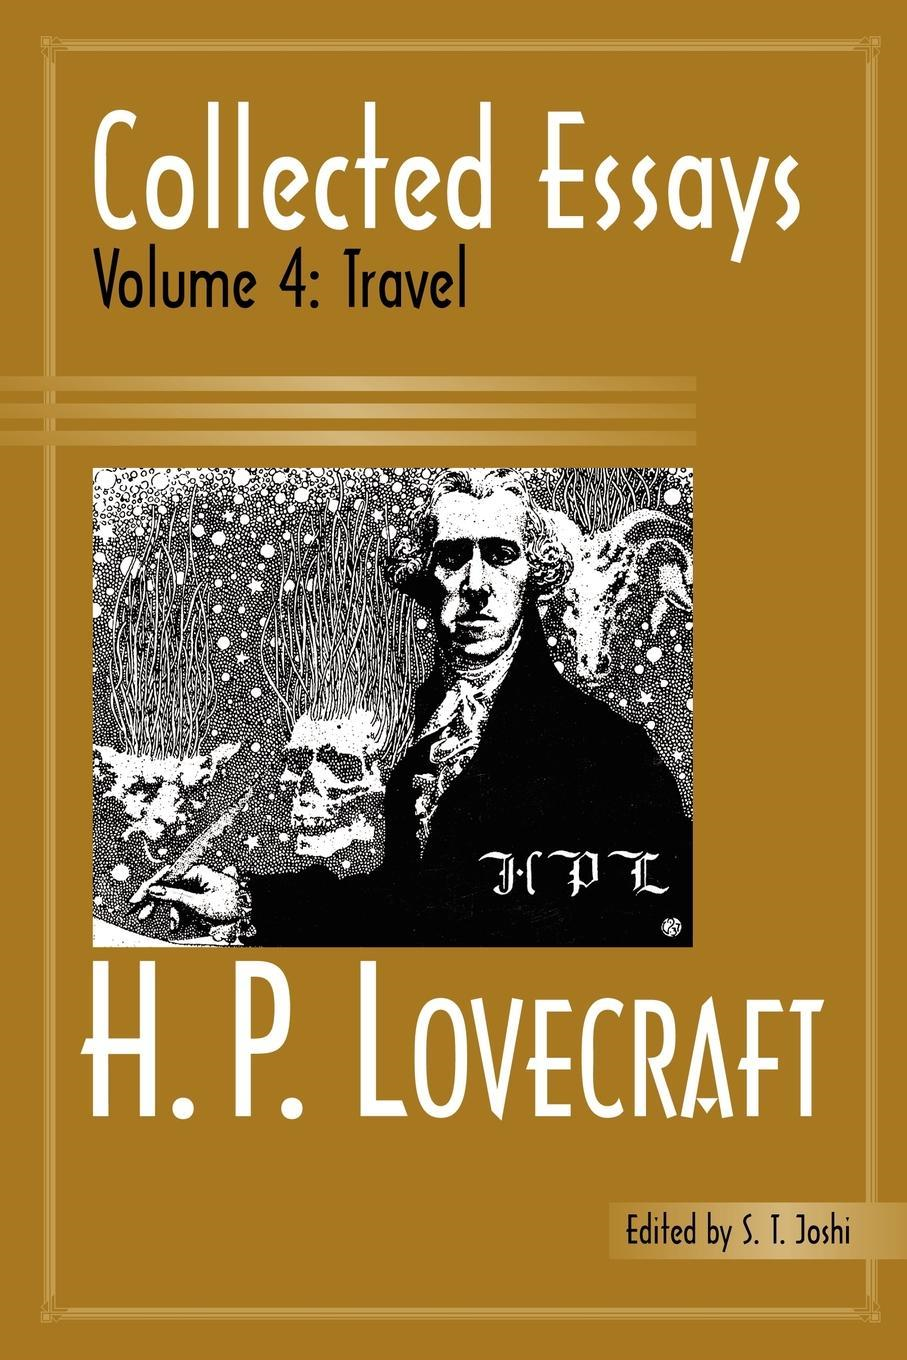 books of h p lovecraft collected essays science collected essays 4 travel